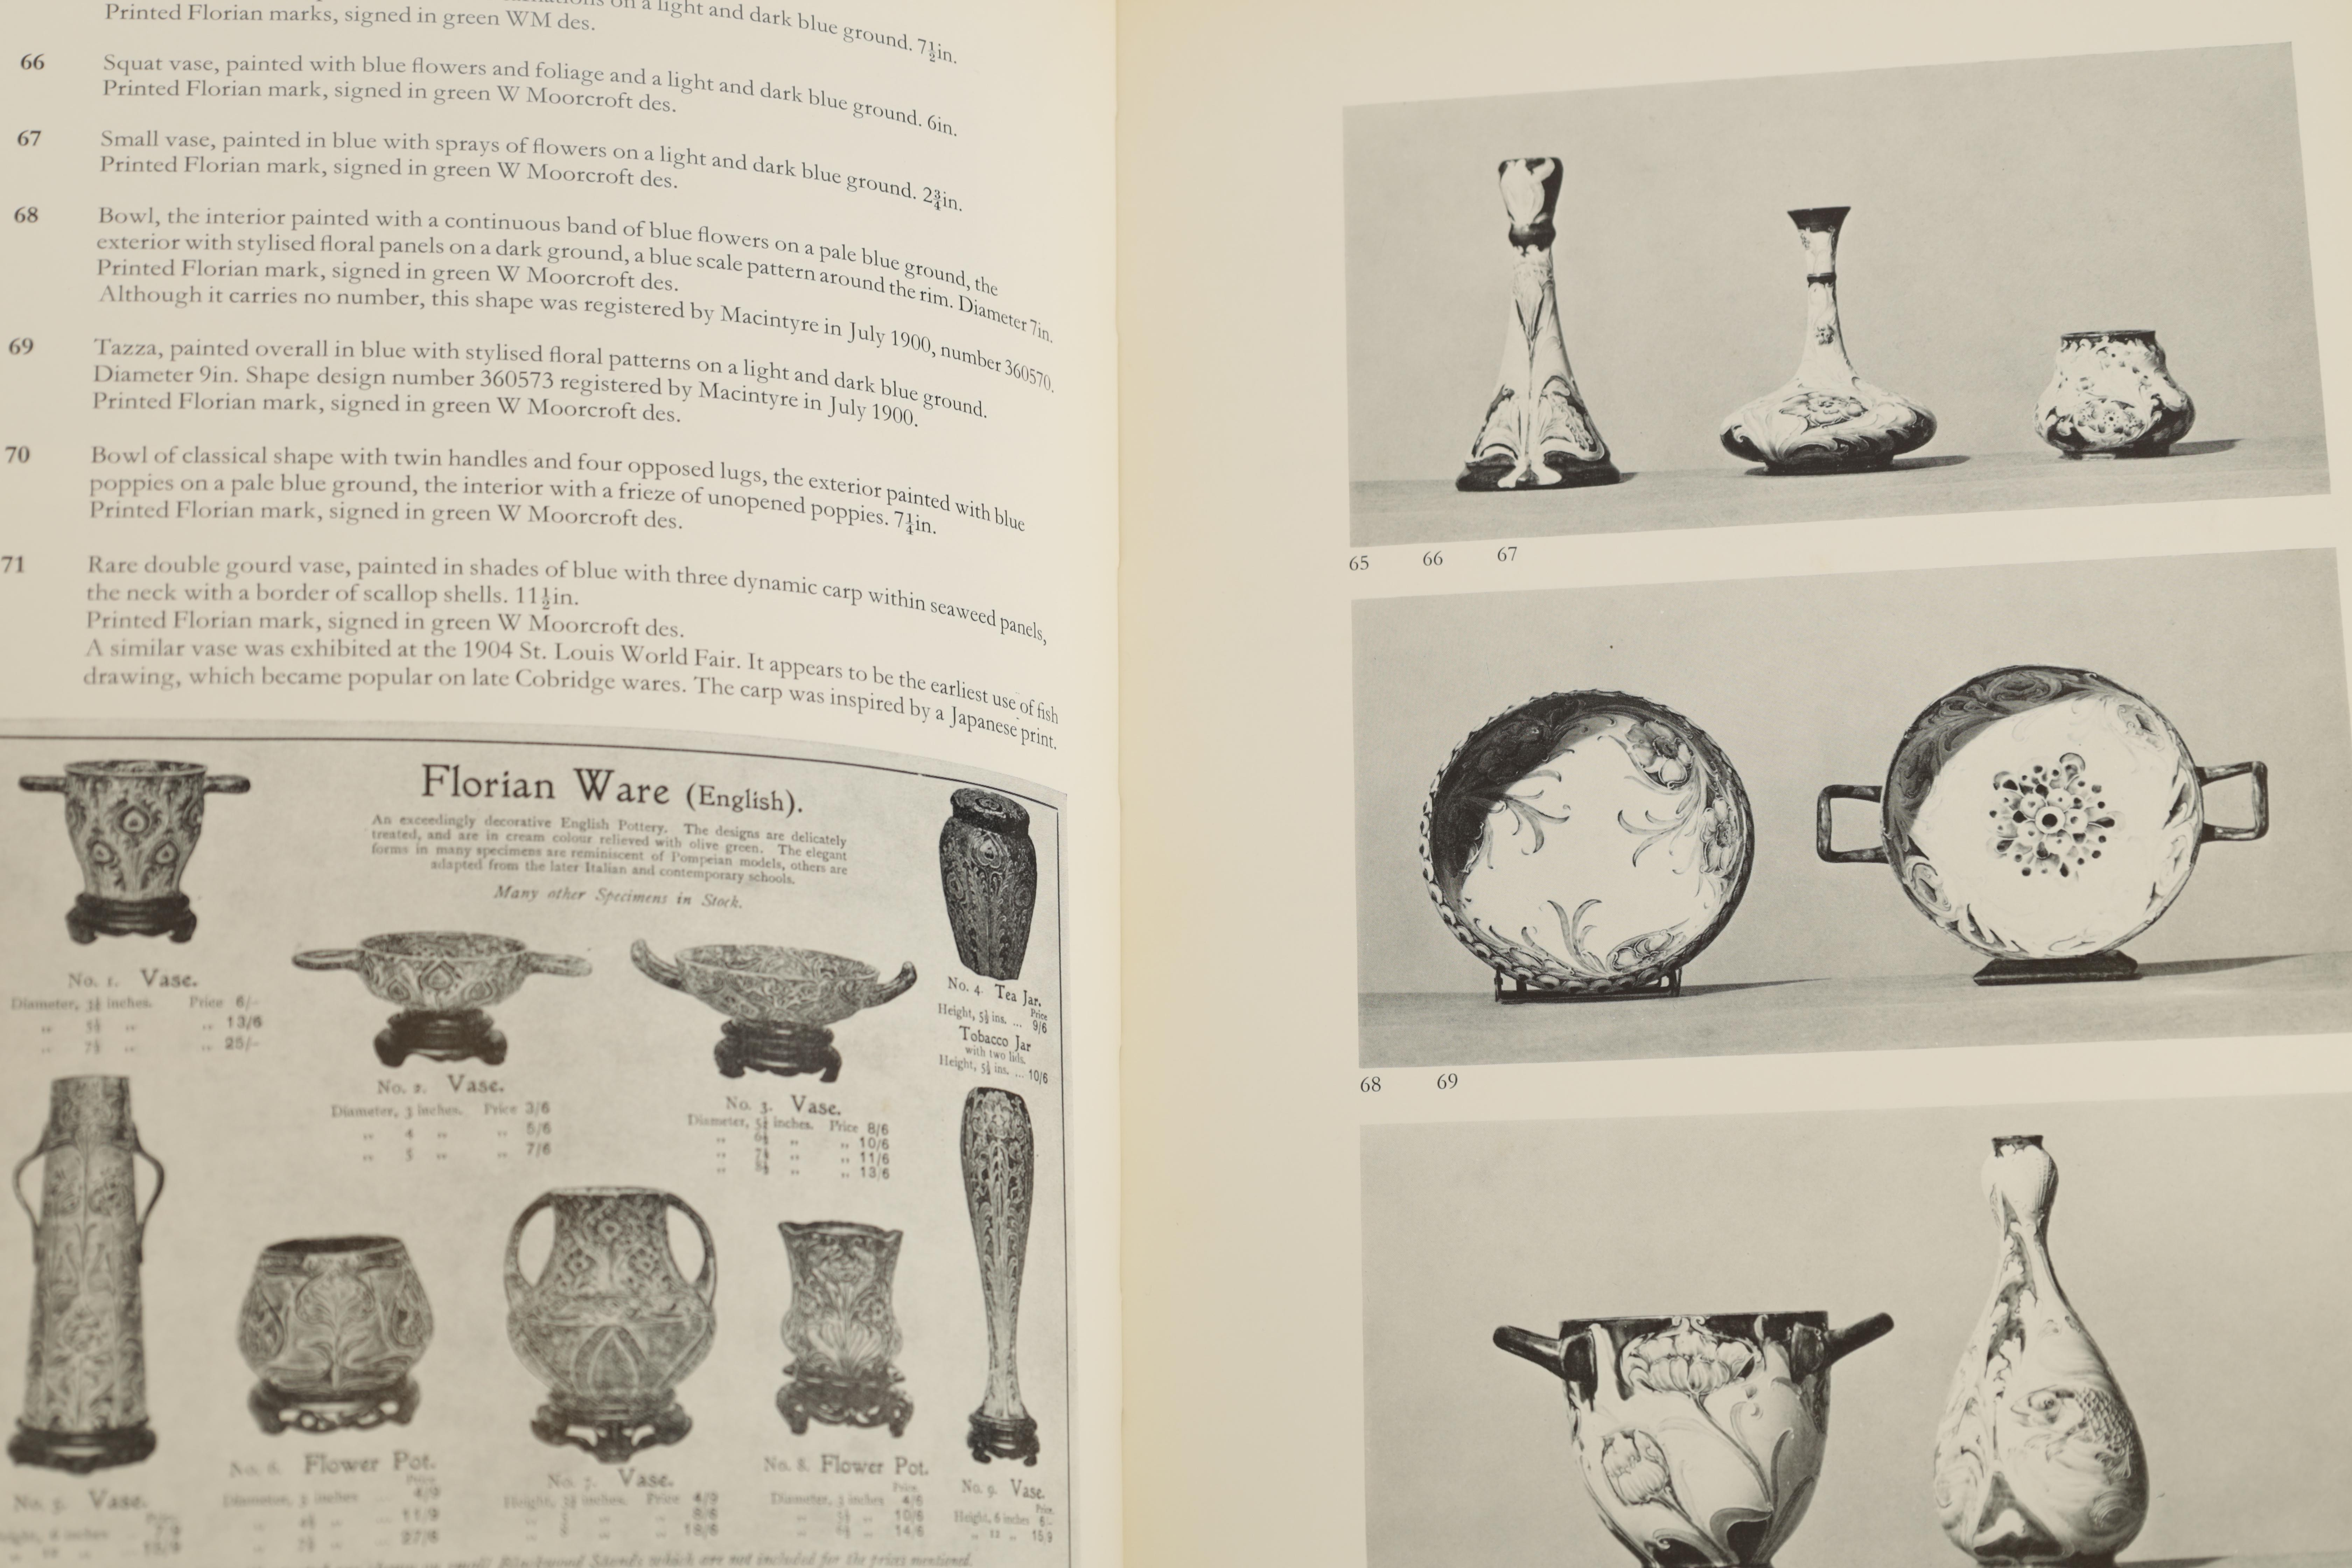 A COLLECTION OF EIGHT CERAMIC REFERENCE BOOKS including Poole pottery by Lesley Haward edited by - Image 8 of 9